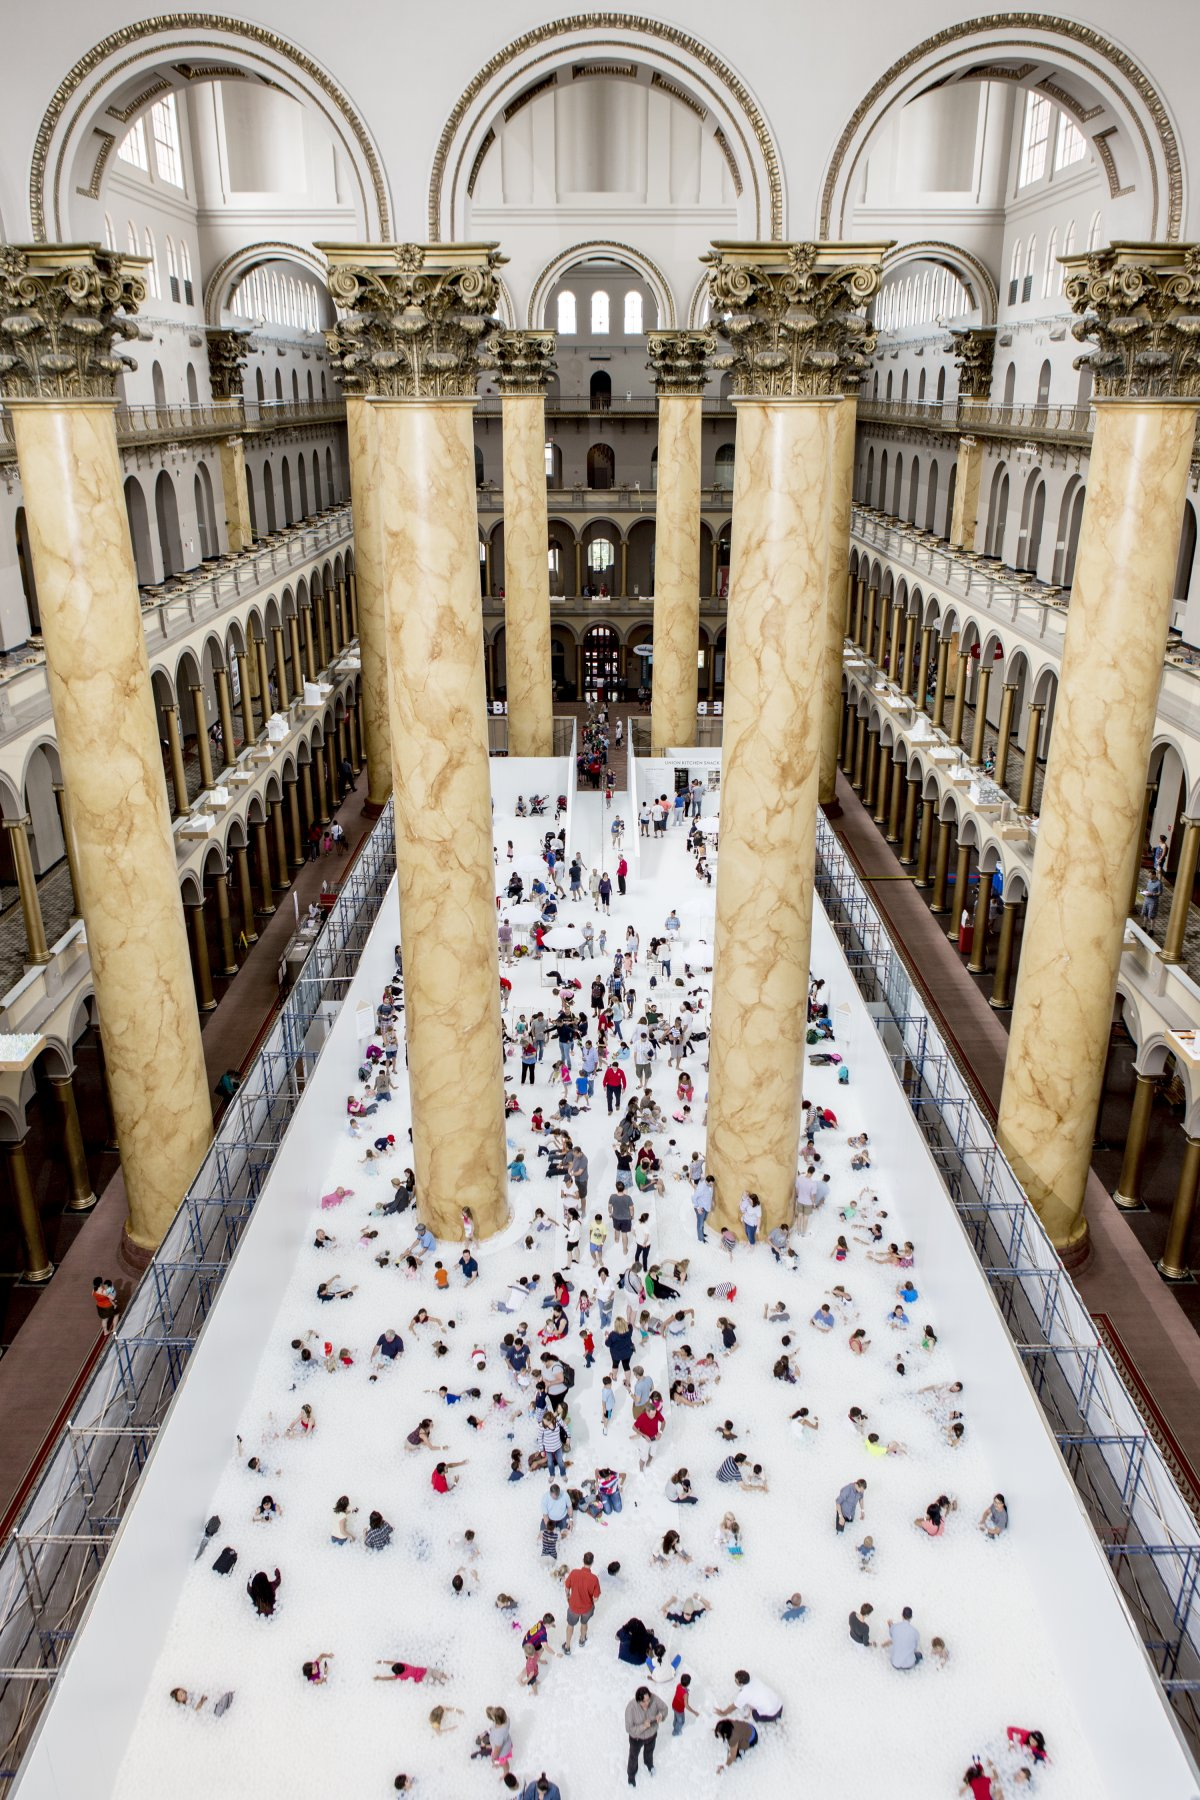 the-10000-square-foot-exhibit--called-the-beach--spans-the-hall-of-the-national-building-museum